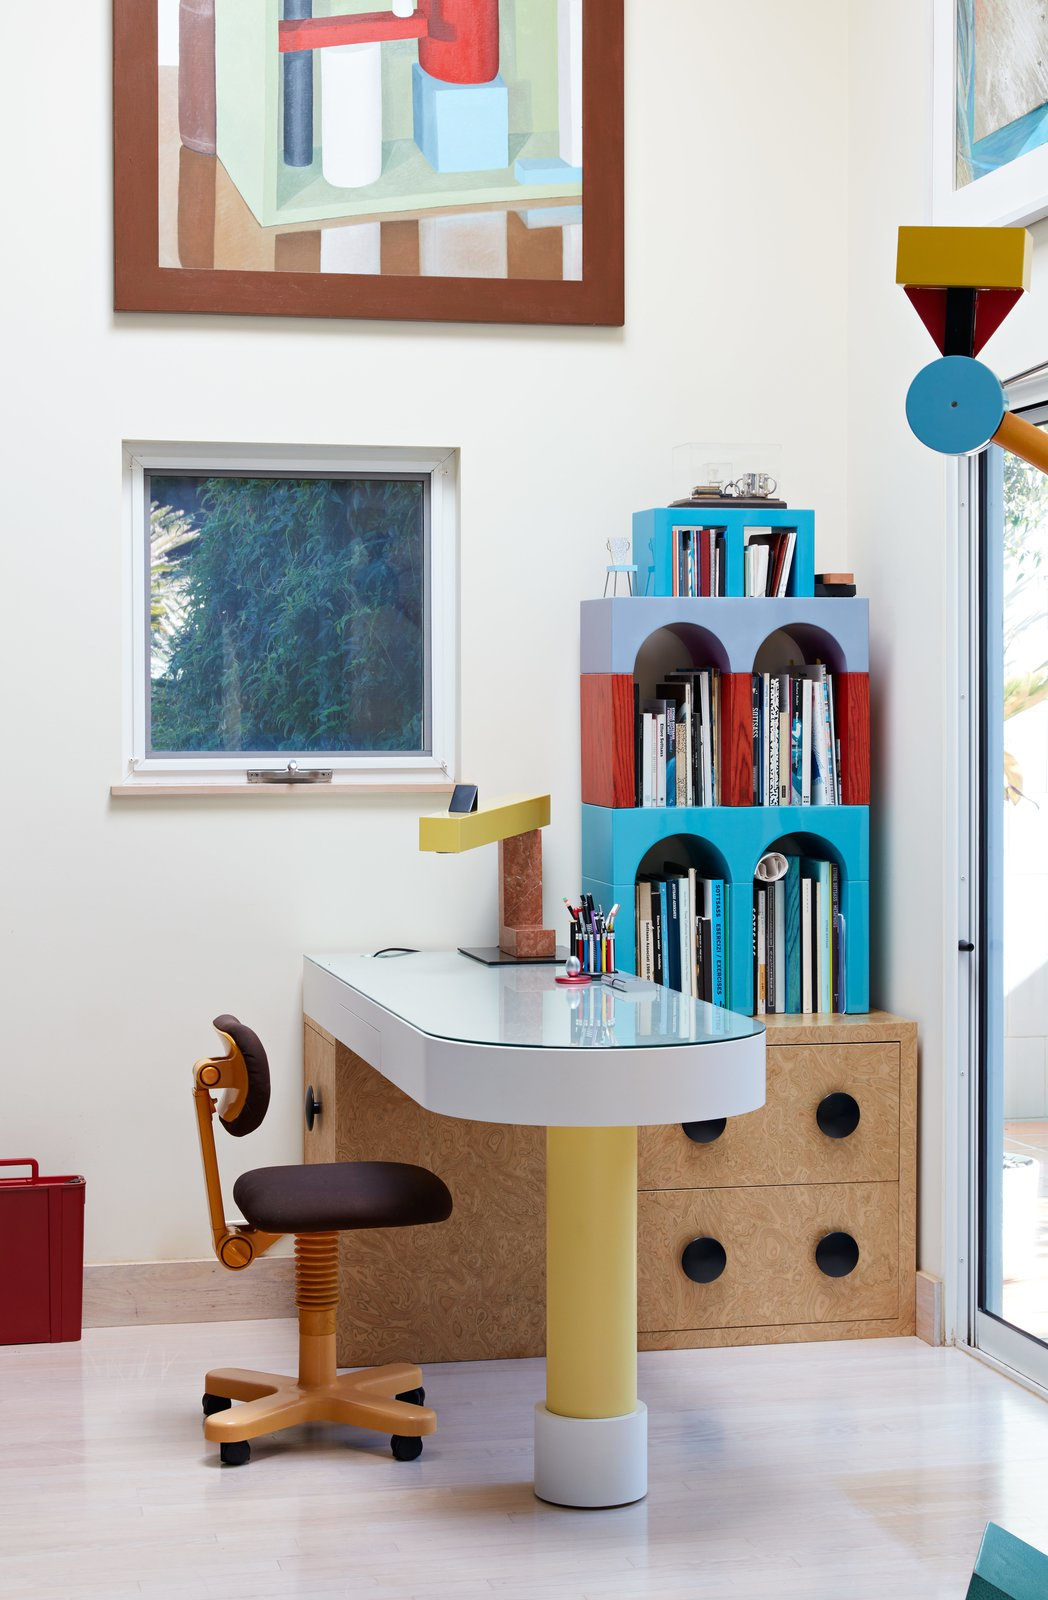 Memphis-style furniture in a home office by Ettore Sottsass